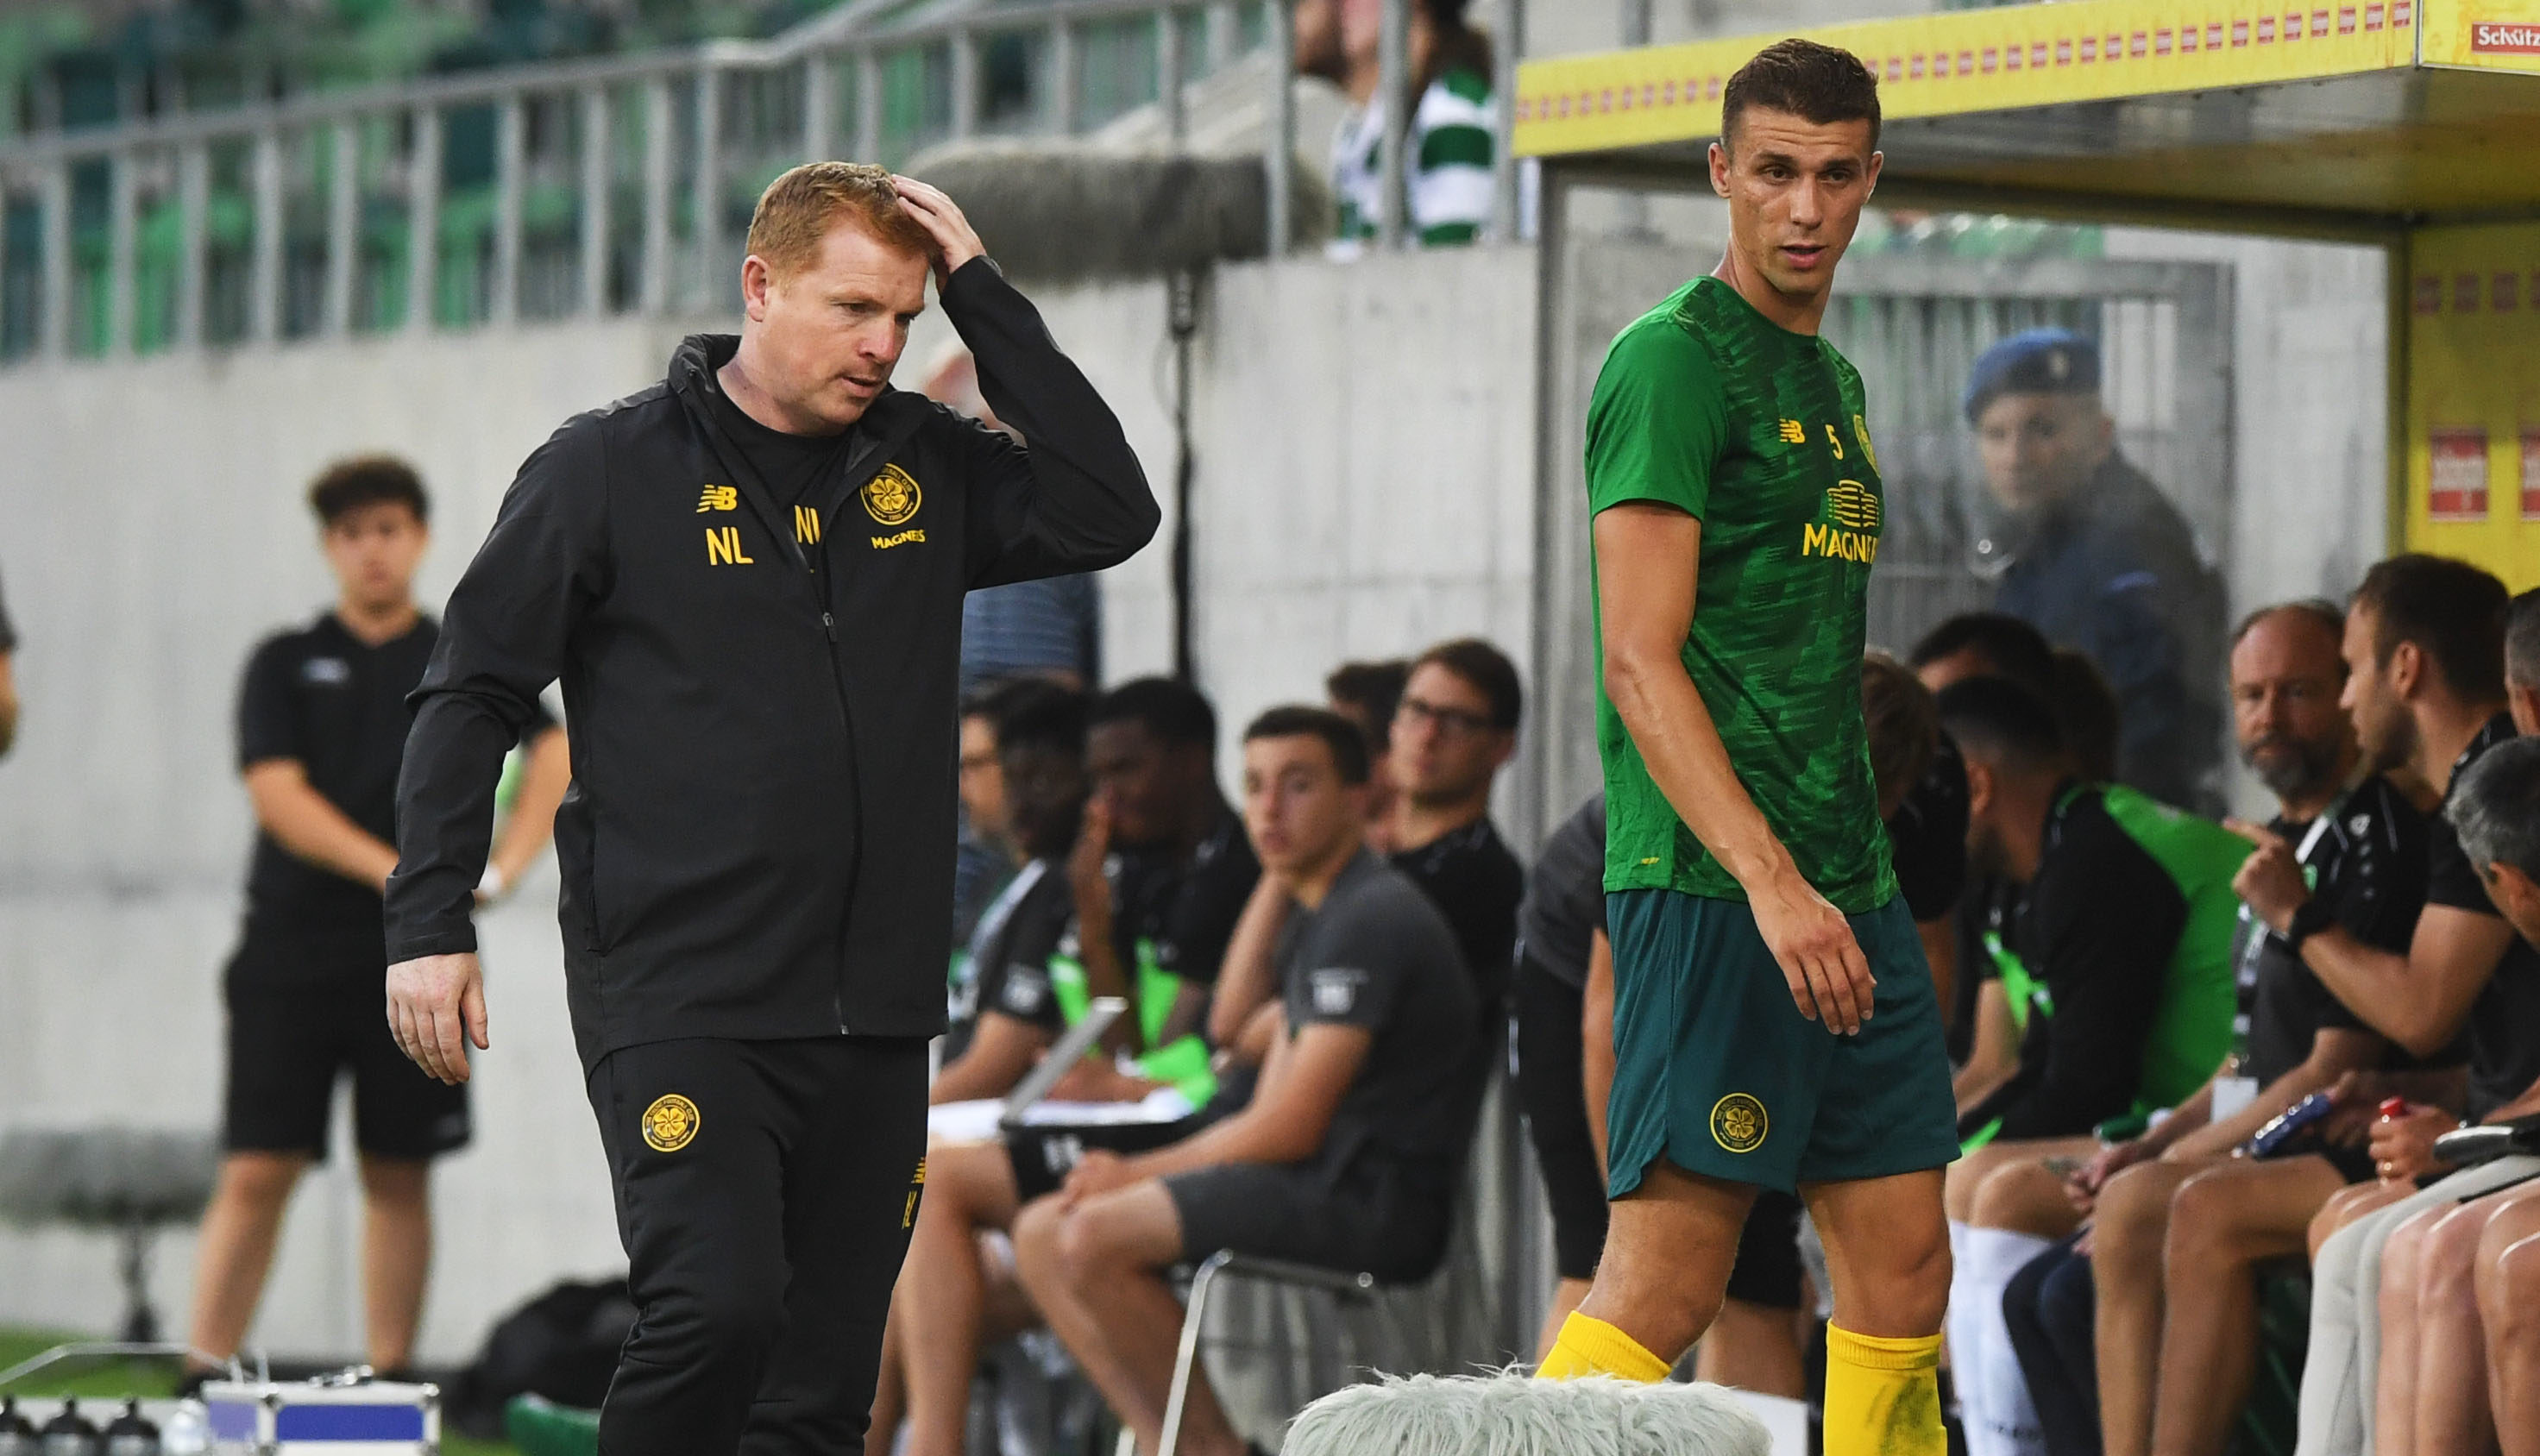 After a VAR check, Jozo Simunovic received a red card for a dangerous tackle in a friendly